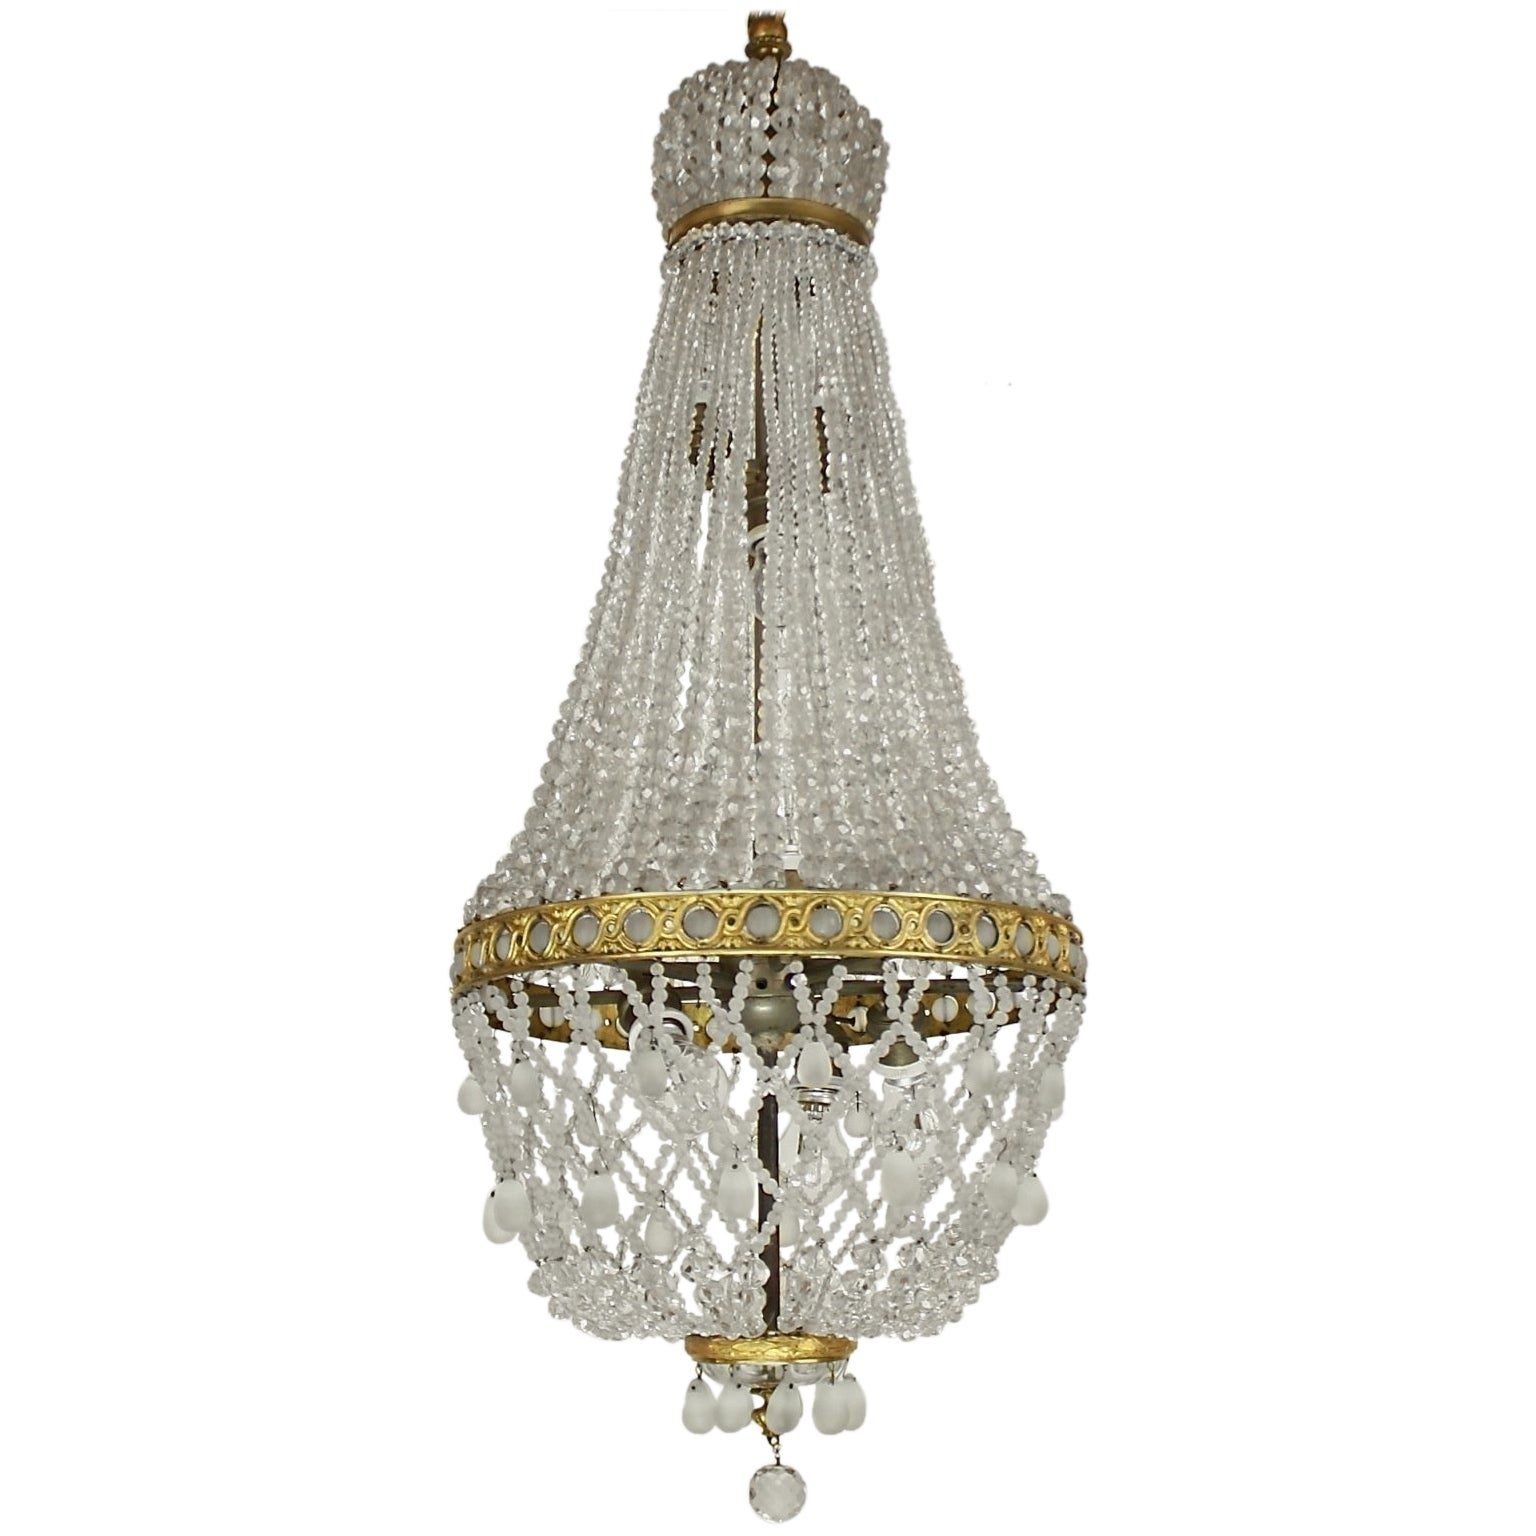 Fine French Empire Style Cut-Crystal Tent and Bag Chandelier